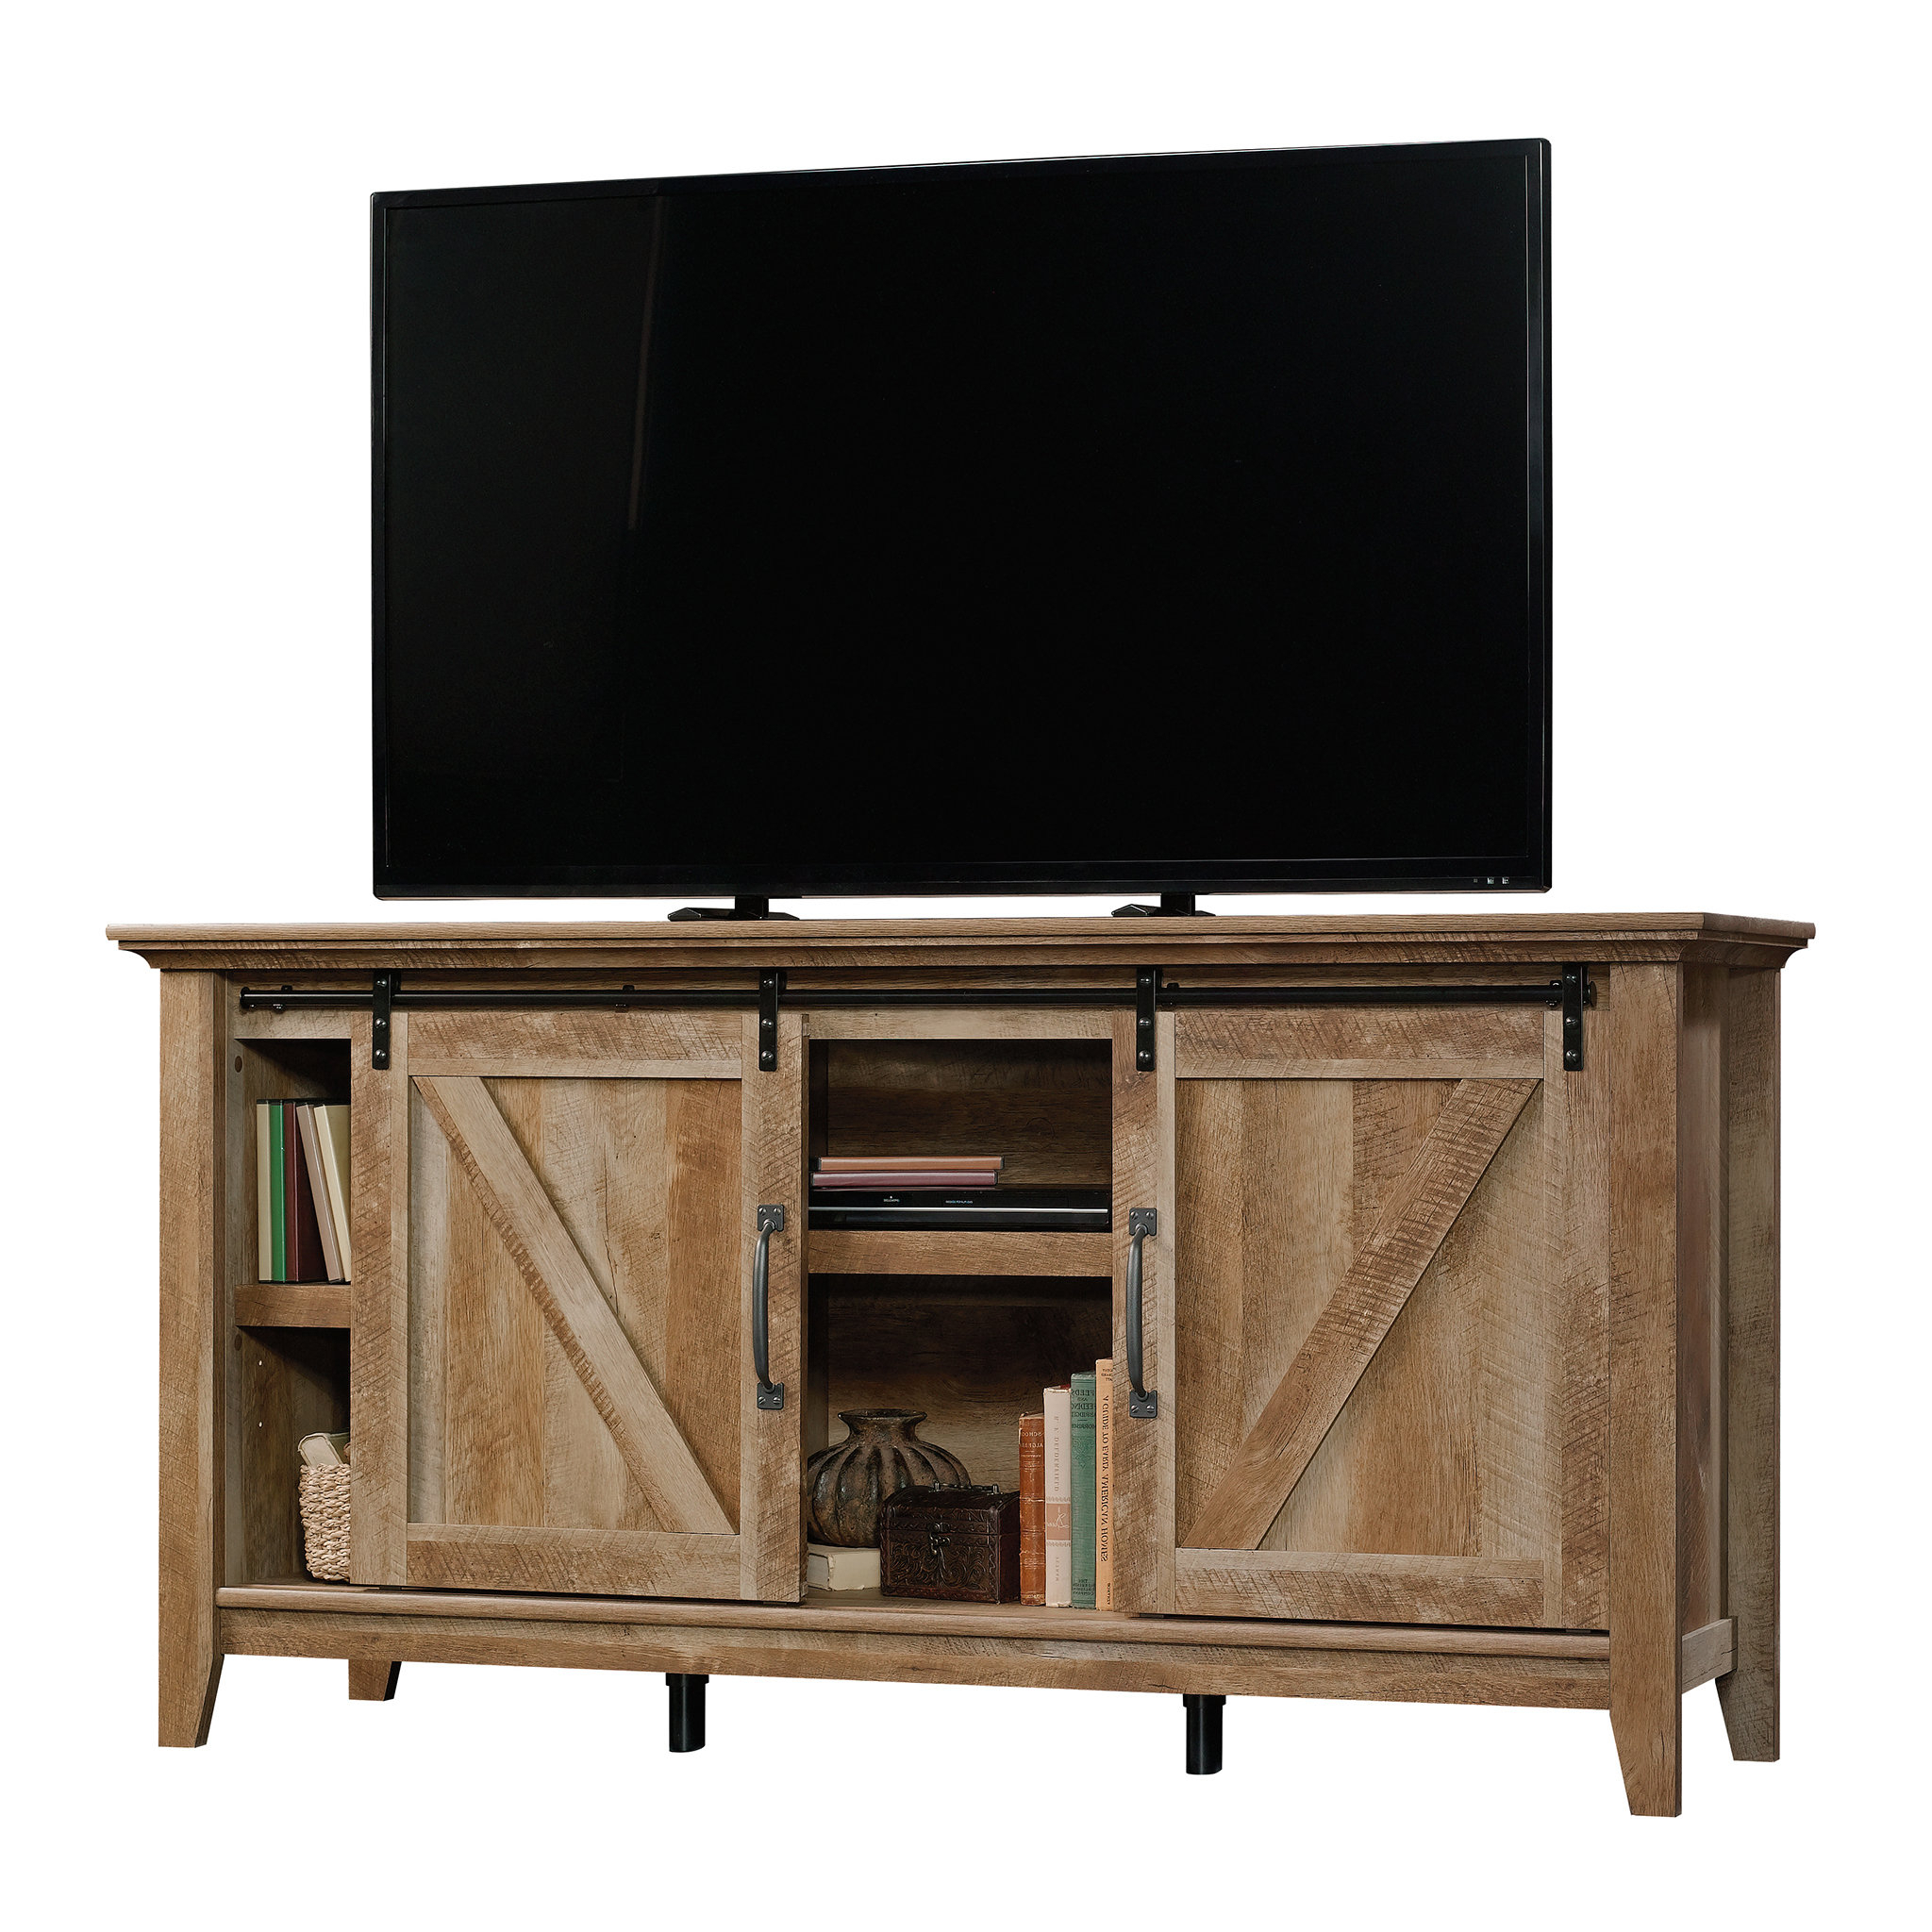 Tall (33 Inches And Larger) Tv Stands | Birch Lane With Regard To Edwin Grey 64 Inch Tv Stands (View 10 of 20)